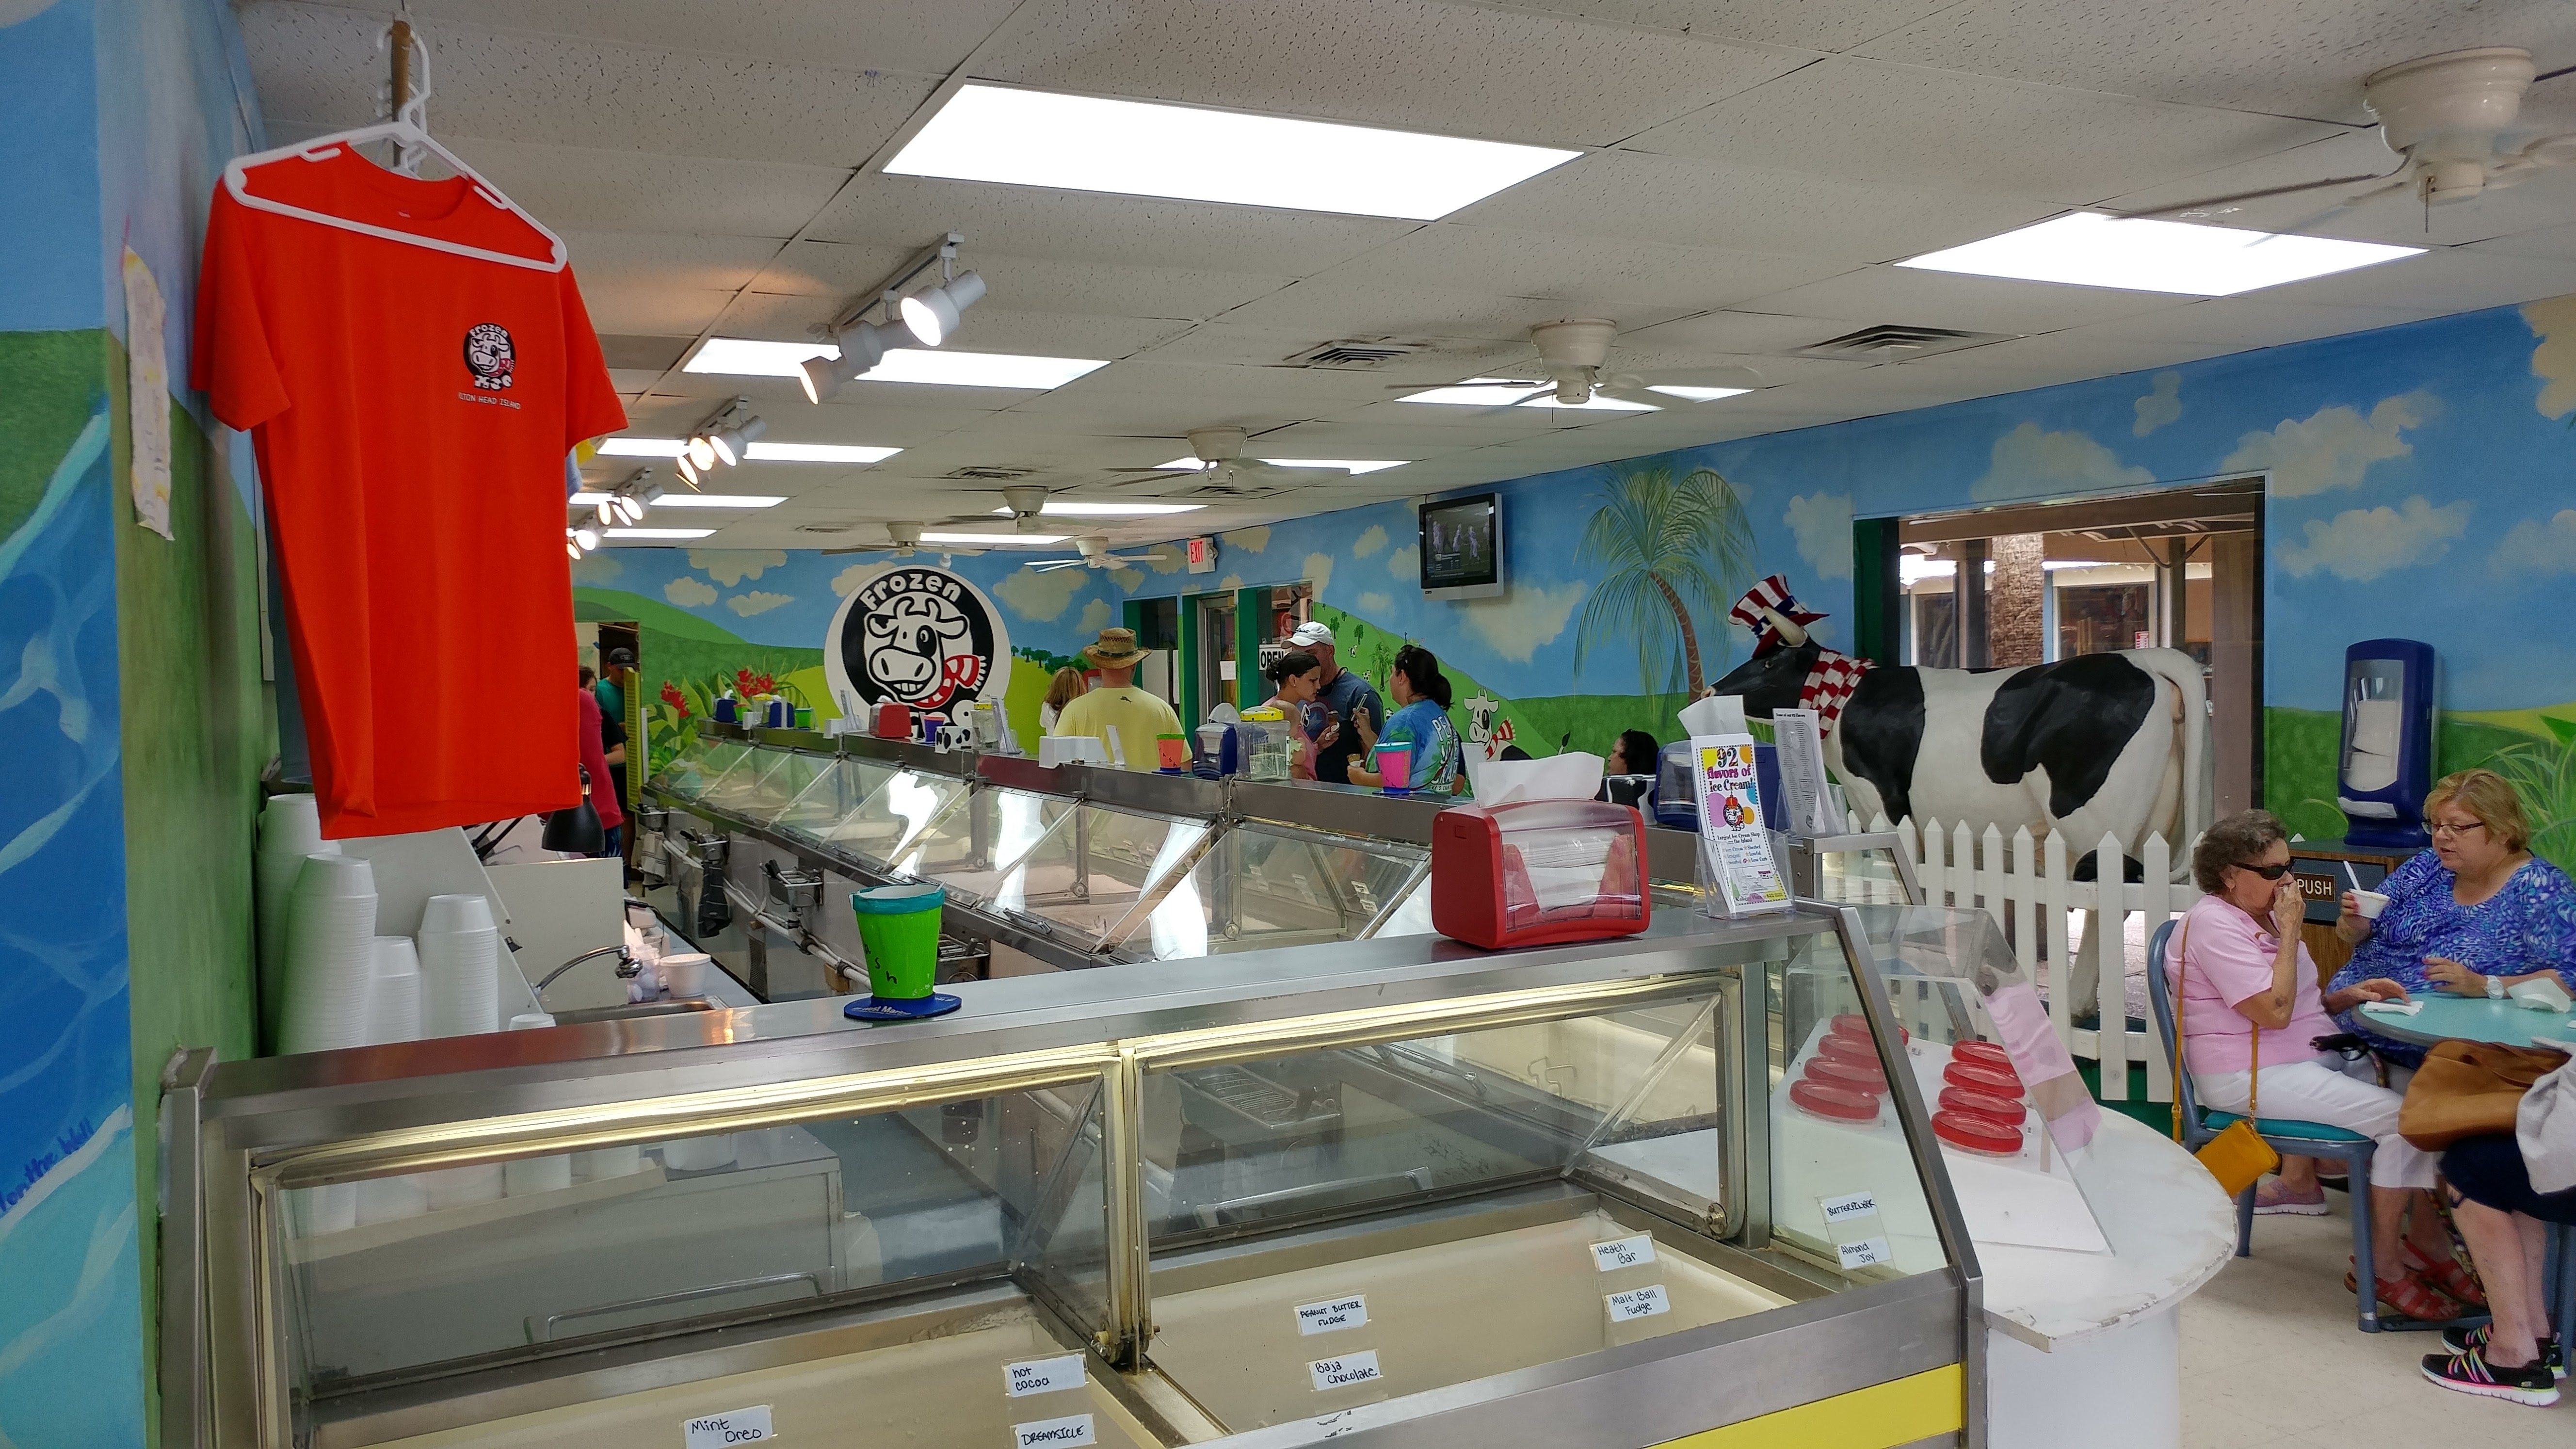 Ice cream freezers line up against one wall inside Frozen Moo Ice Cream.